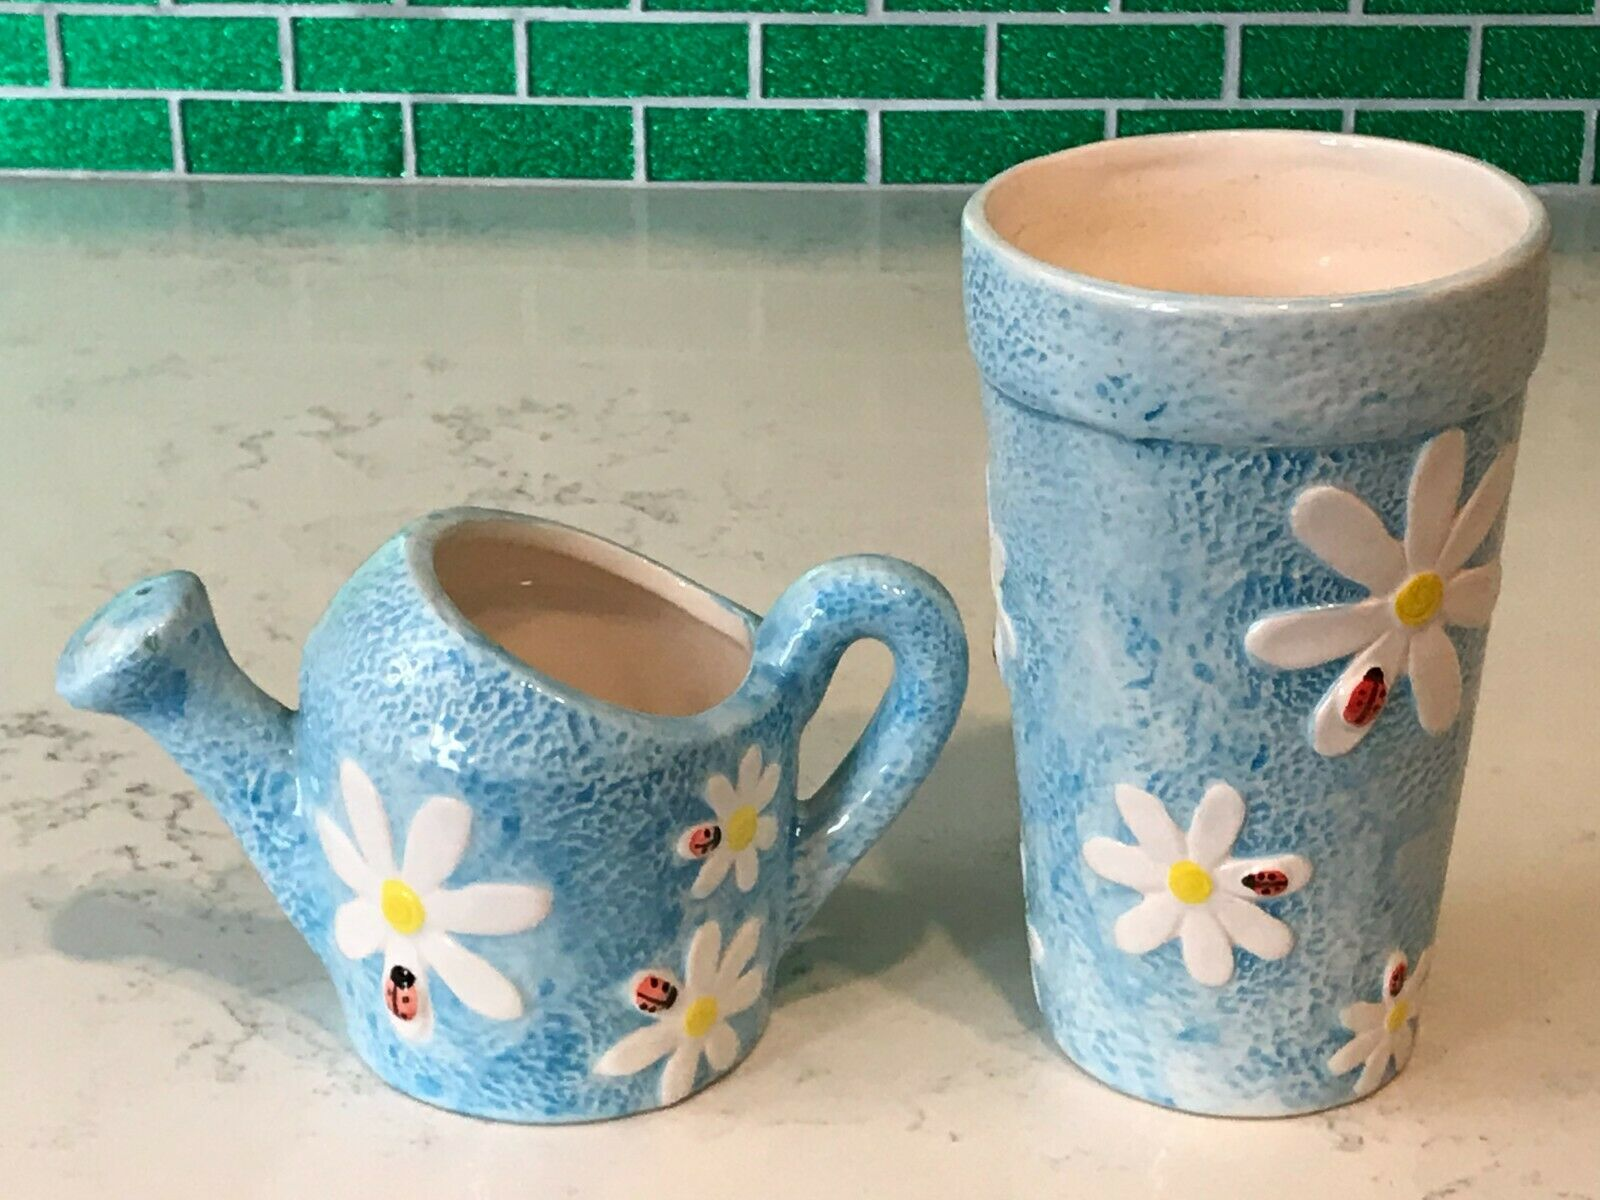 Set of 2 Vintage Ceramic Watering Cans Decorated with Daisies & Lady Bugs